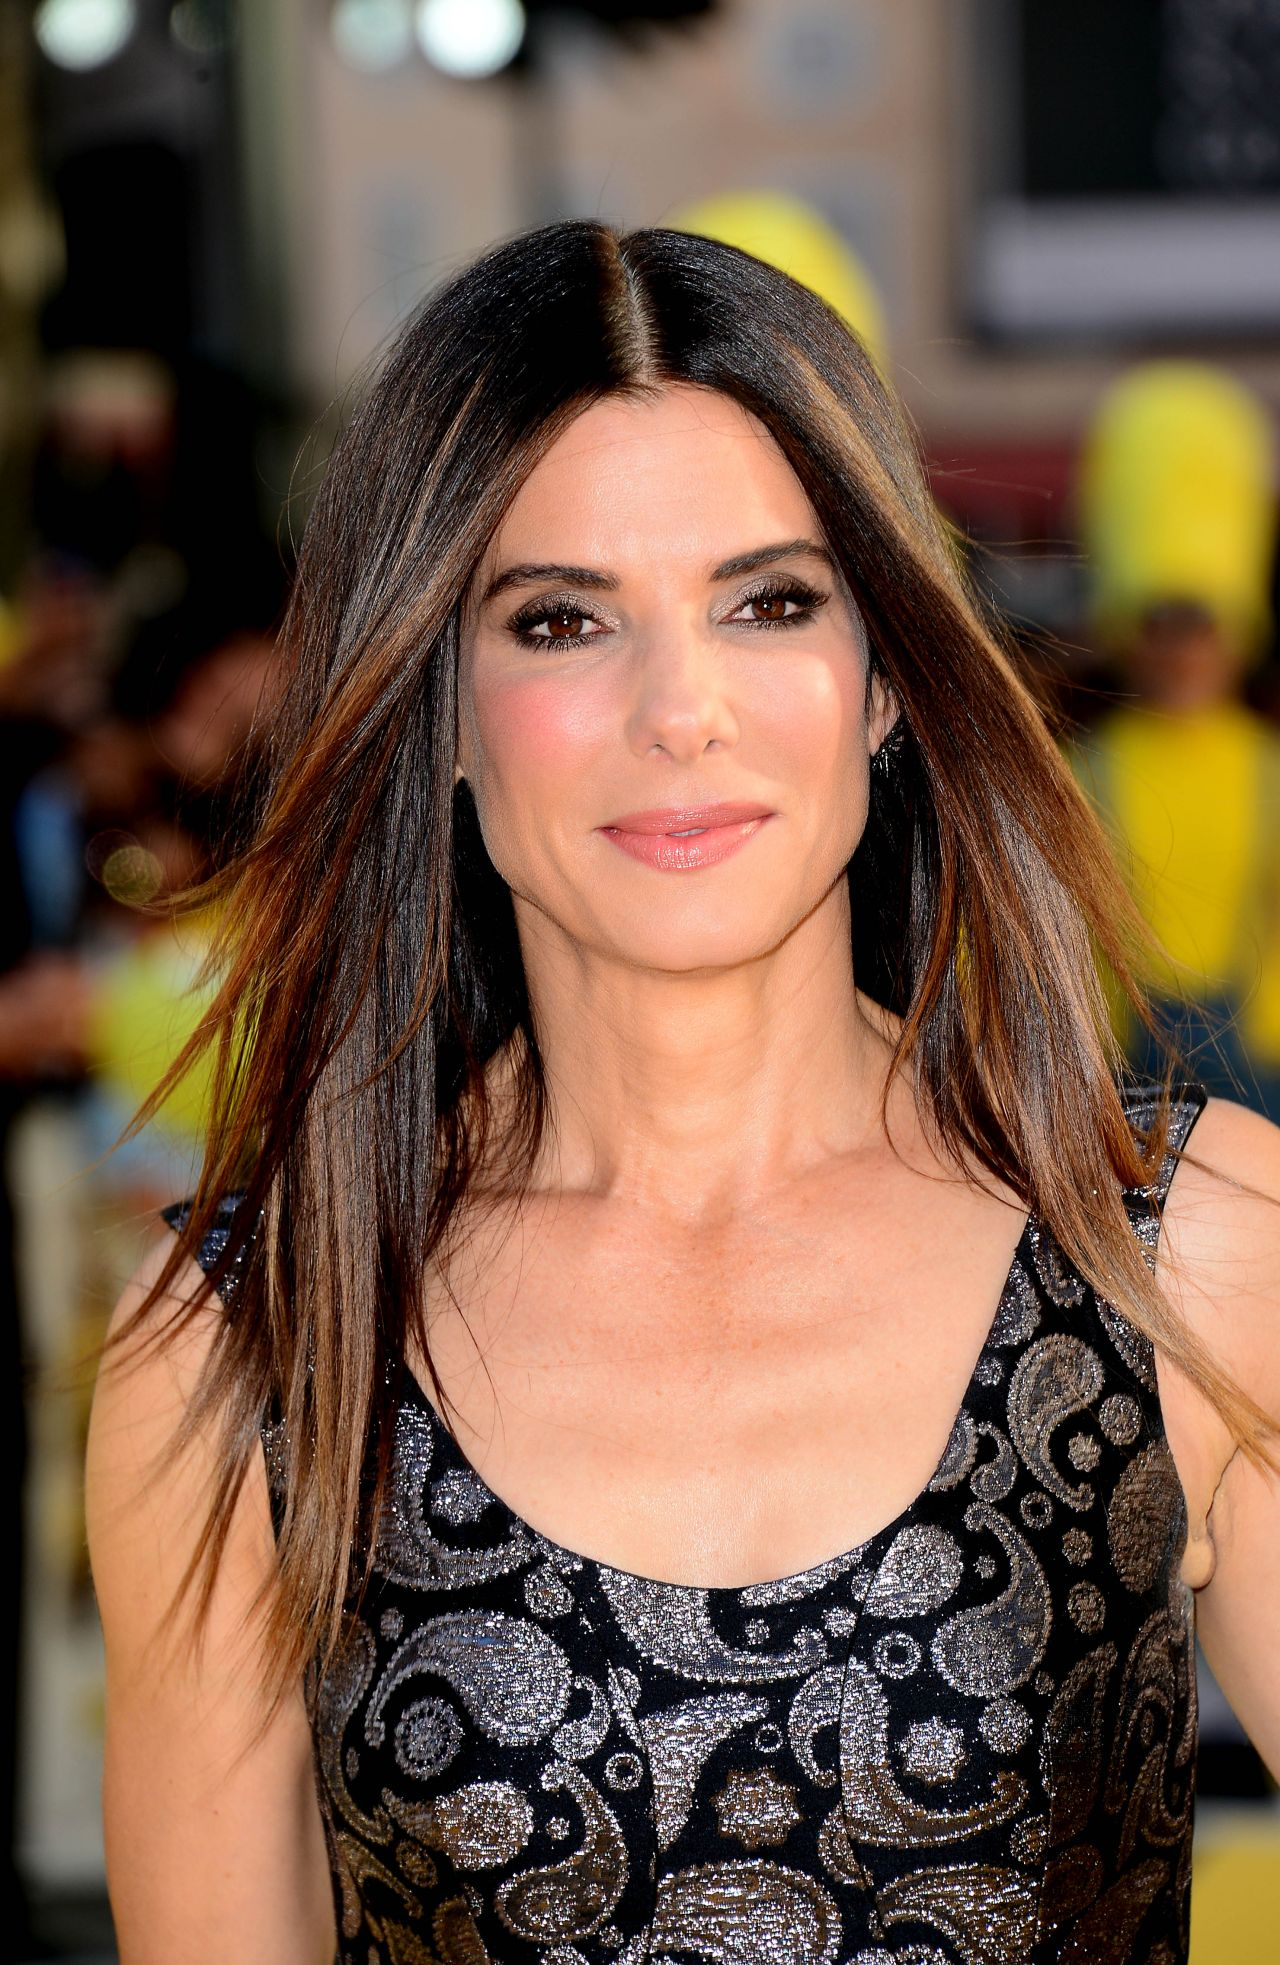 Sandra Bullock – Minions World Premiere in London Sandra Bullock